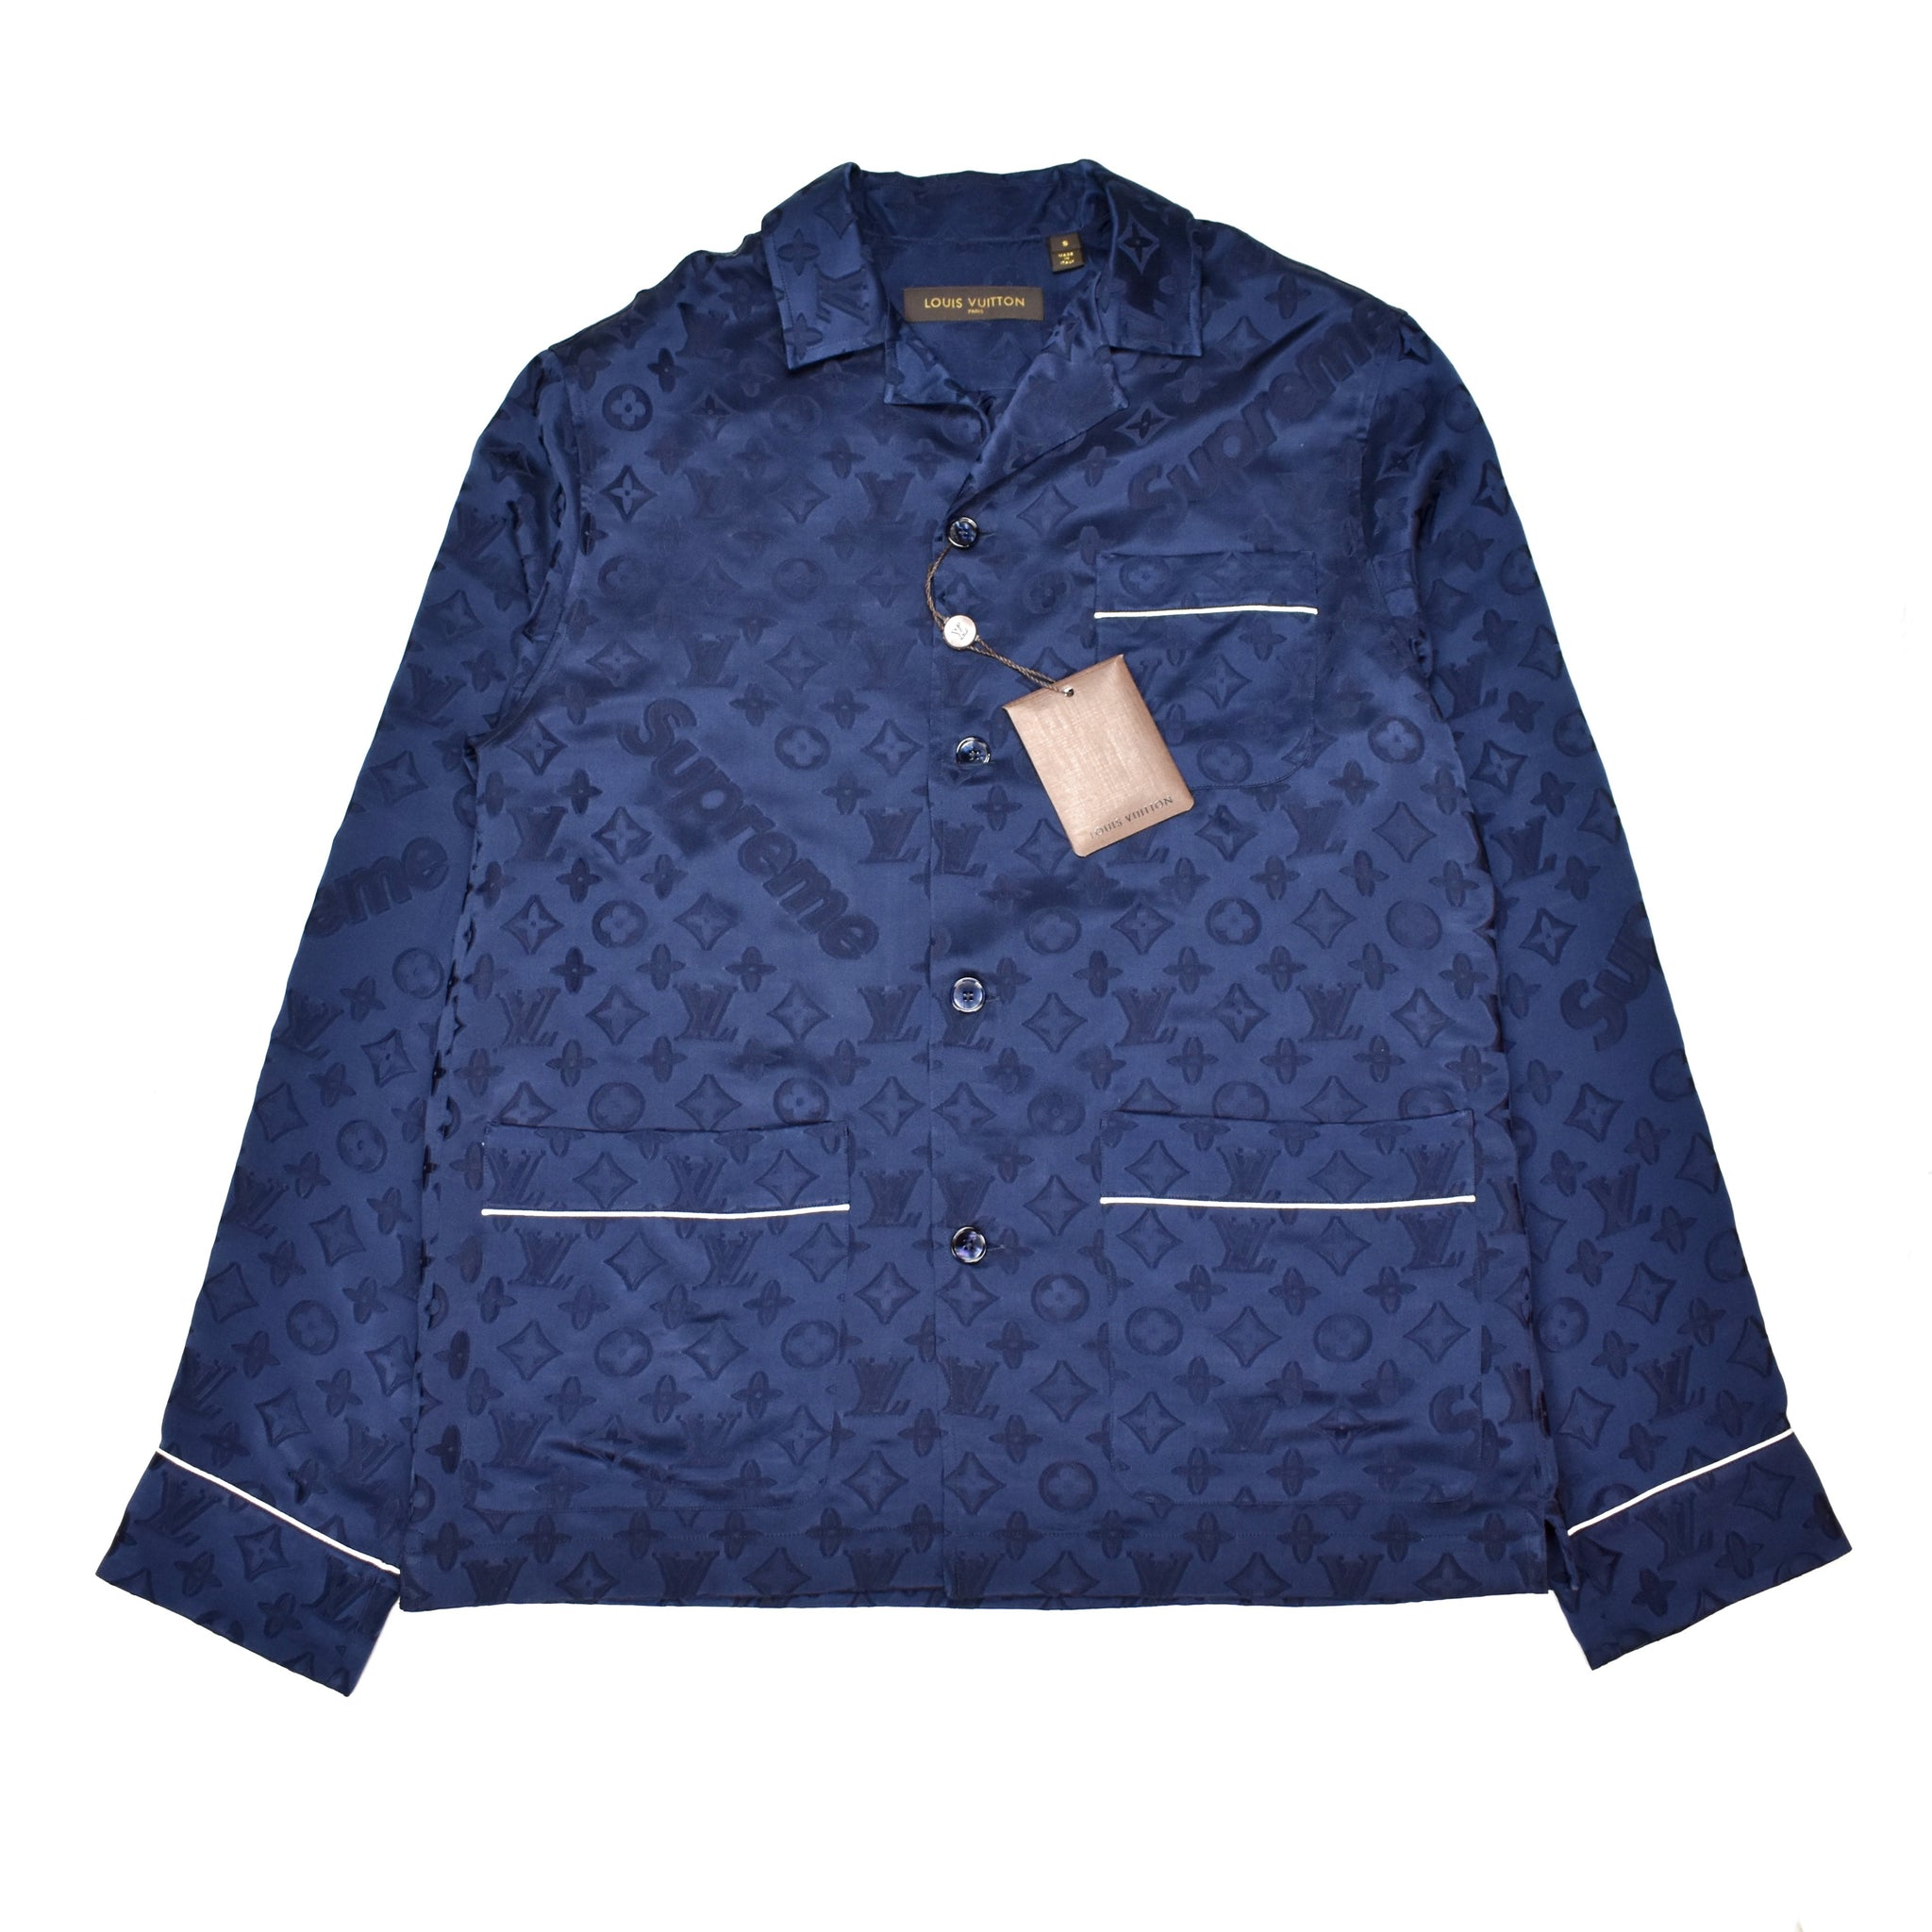 Louis Vuitton x Supreme - Navy Monogram Pajama Shirt